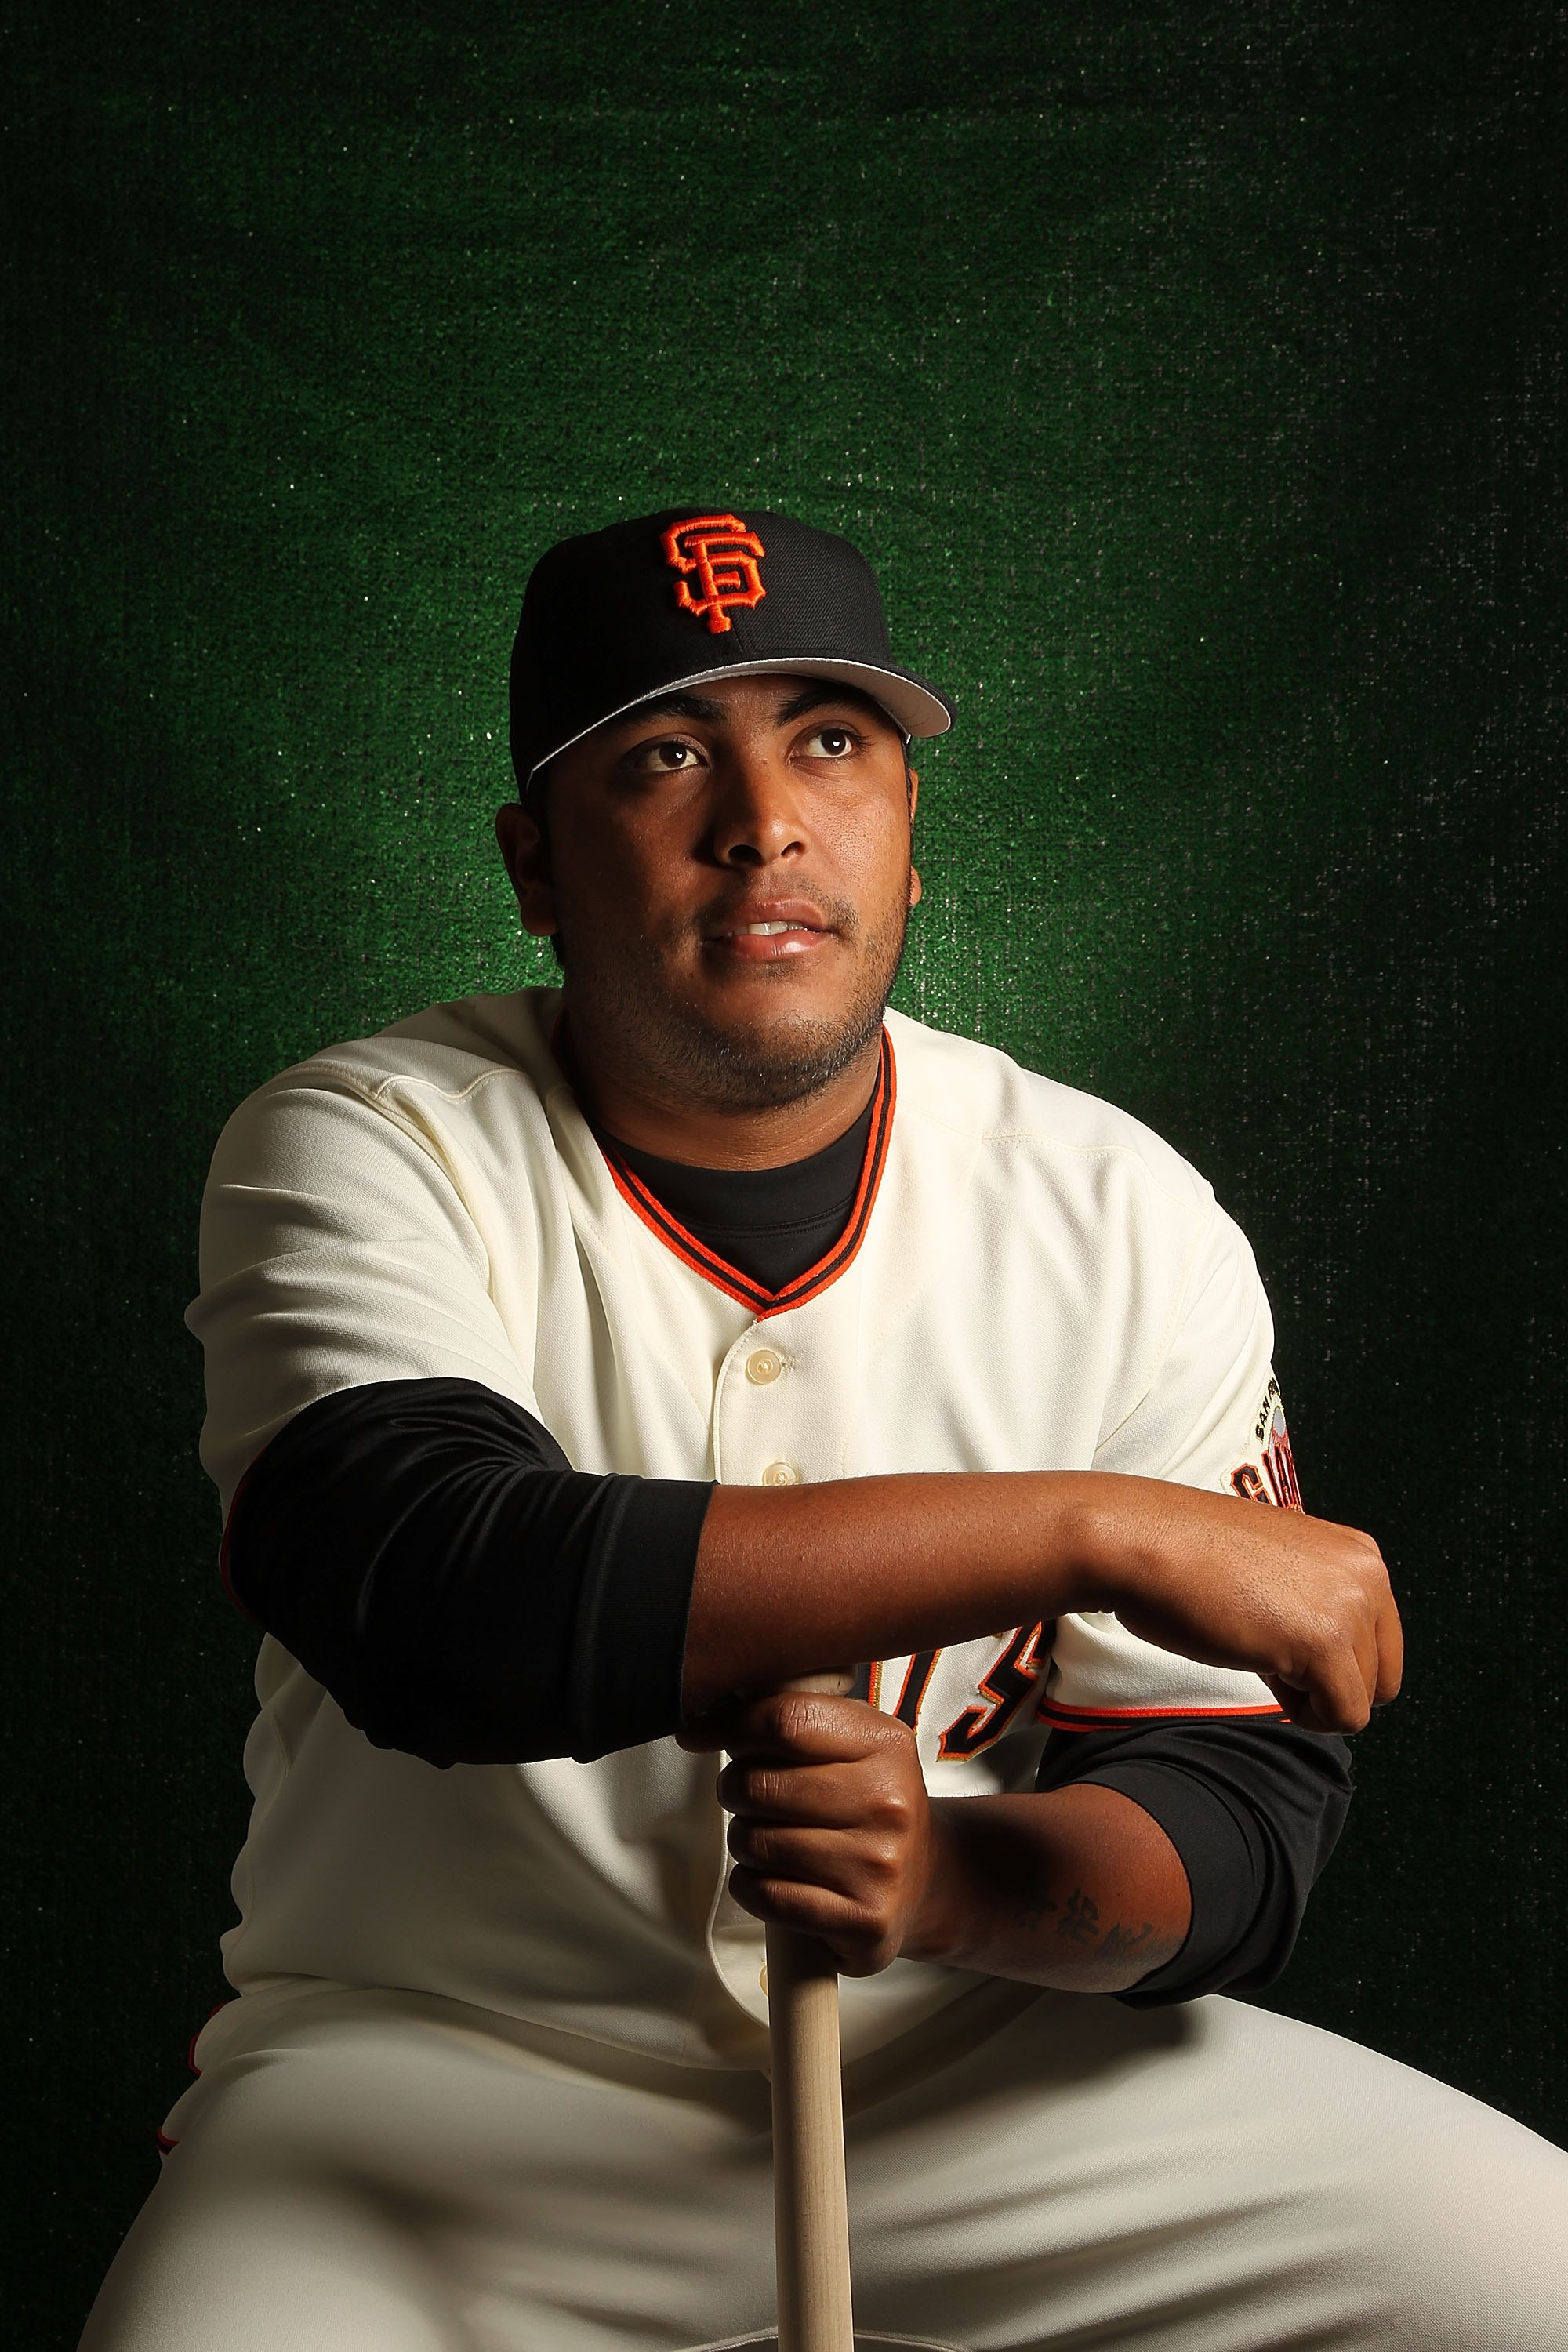 SCOTTSDALE, AZ - FEBRUARY 28:  Hector Sanchez of the San Francisco Giants poses during media photo day on February 28, 2010 at Scottsdale Stadium in Scottsdale, Arizona.  (Photo by Jed Jacobsohn/Getty Images)